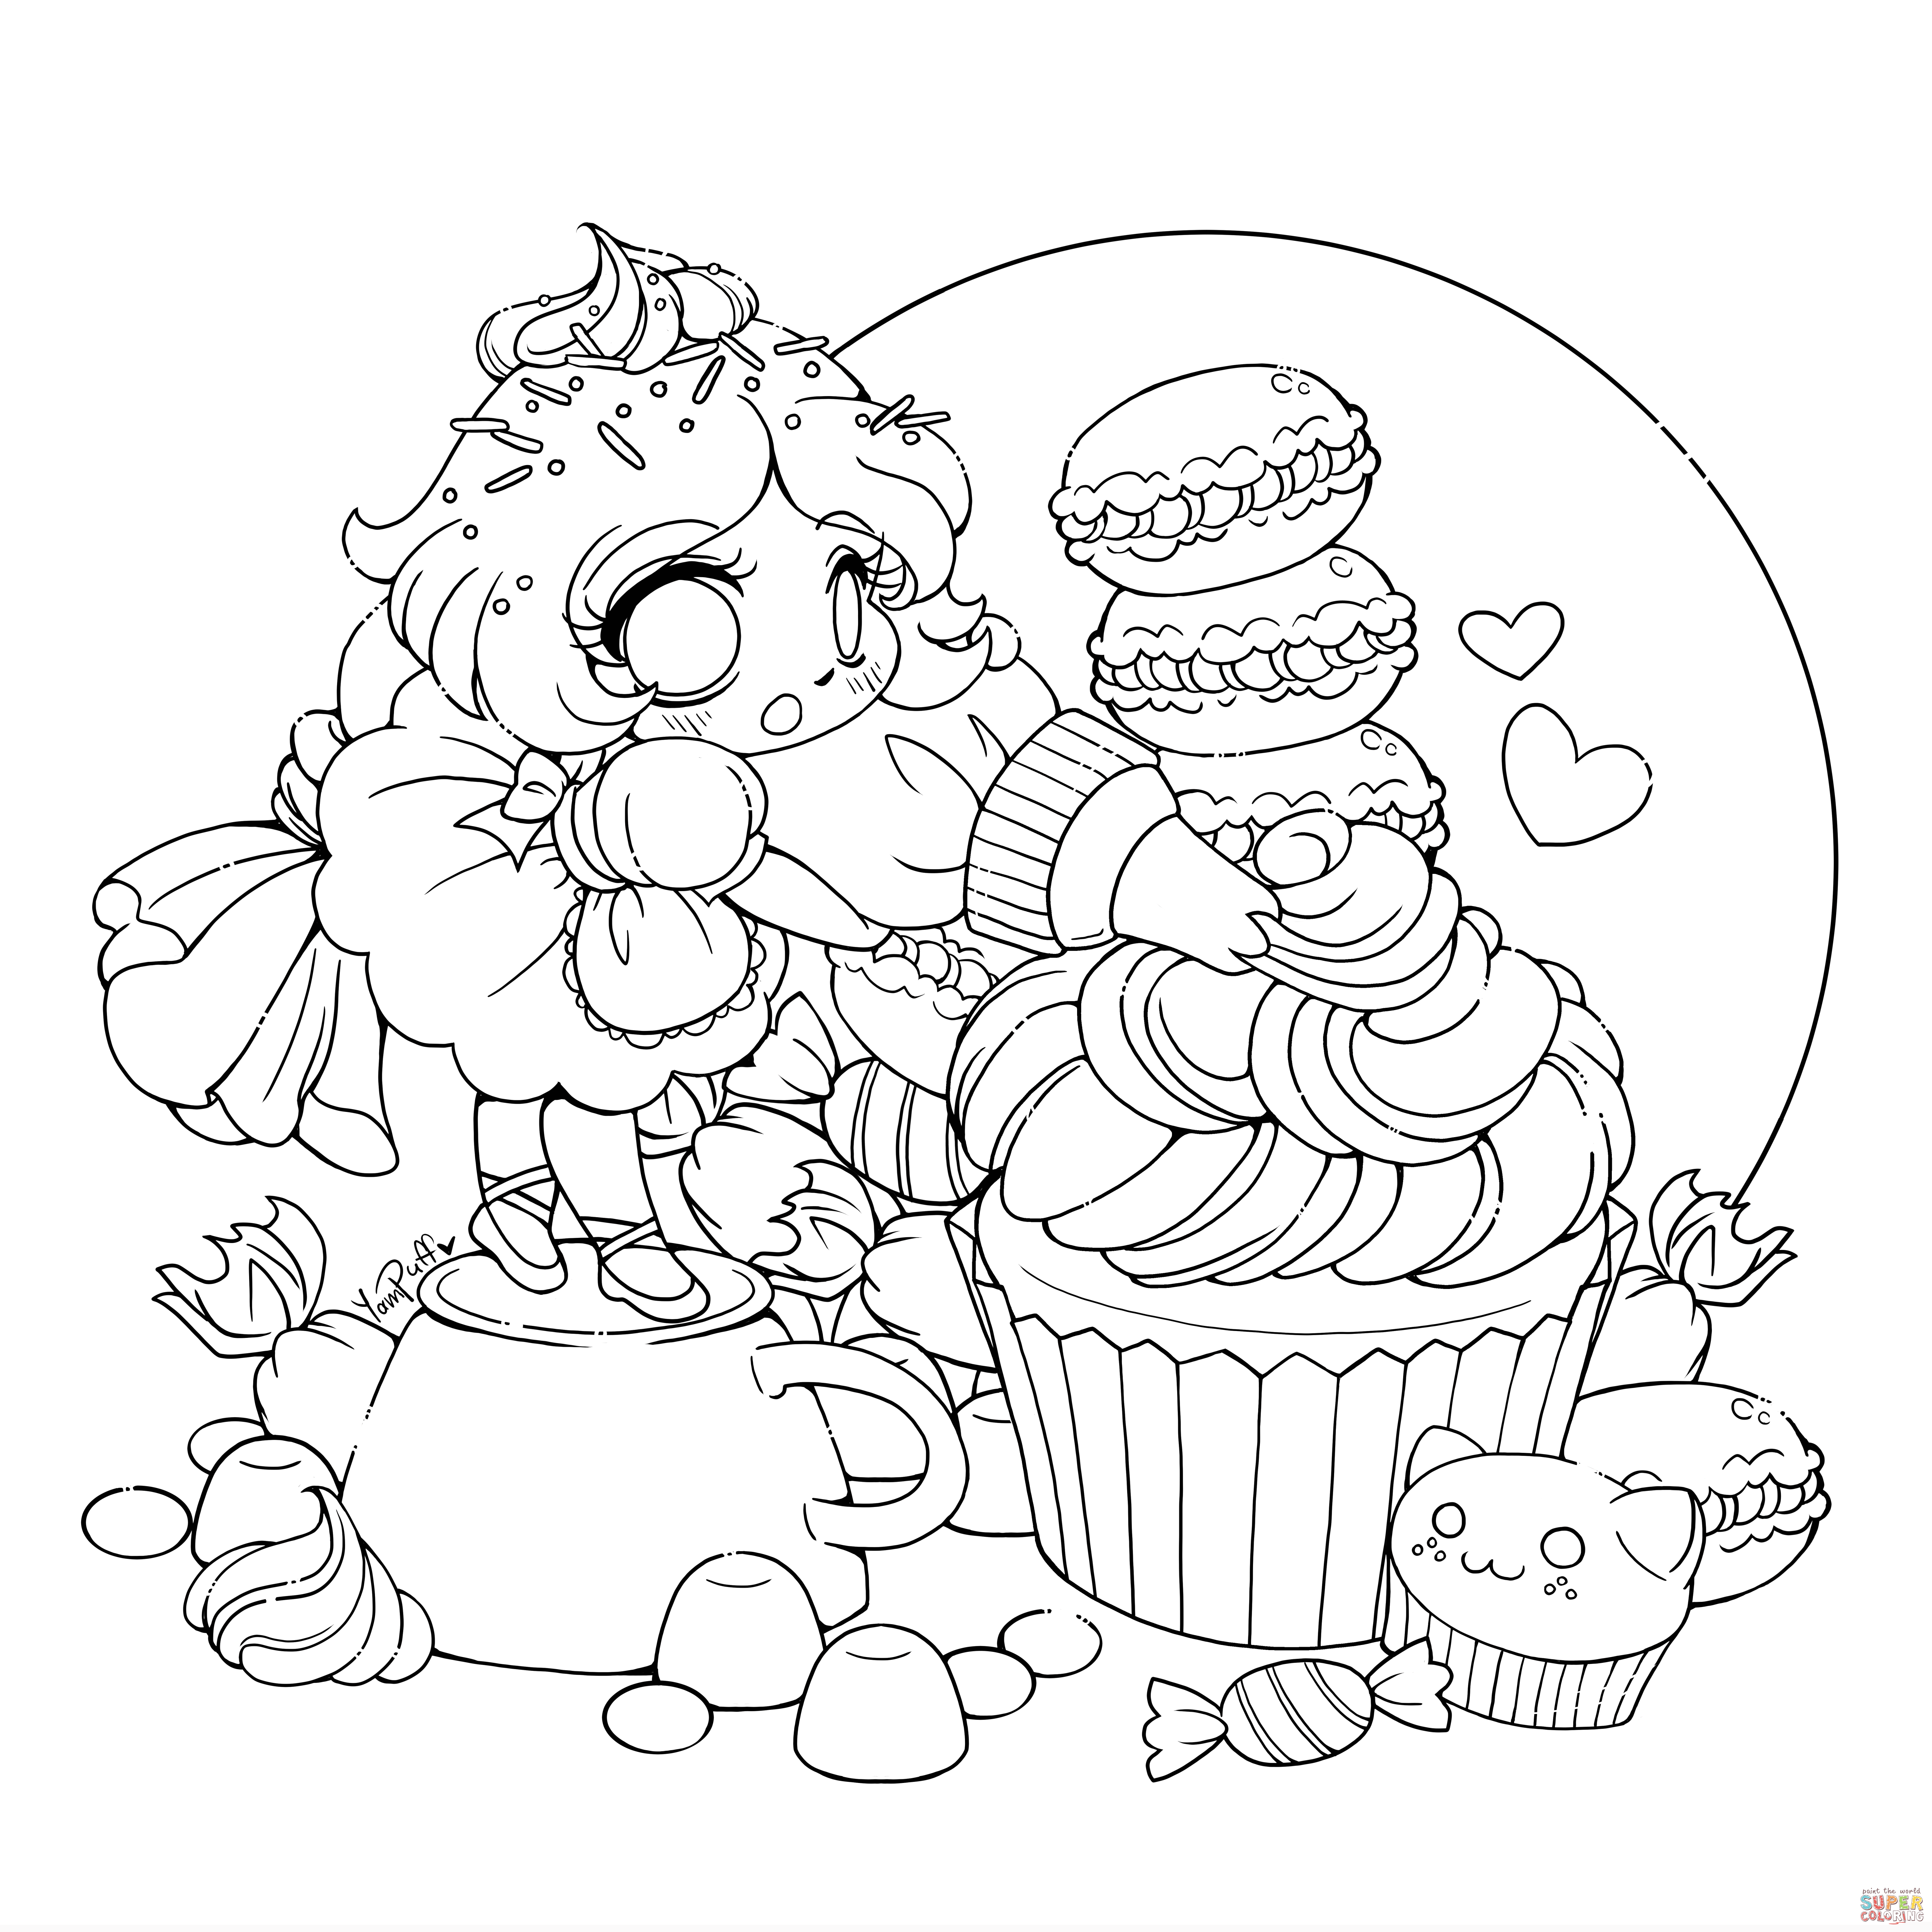 chibi lollipop girl coloring page free printable coloring pages